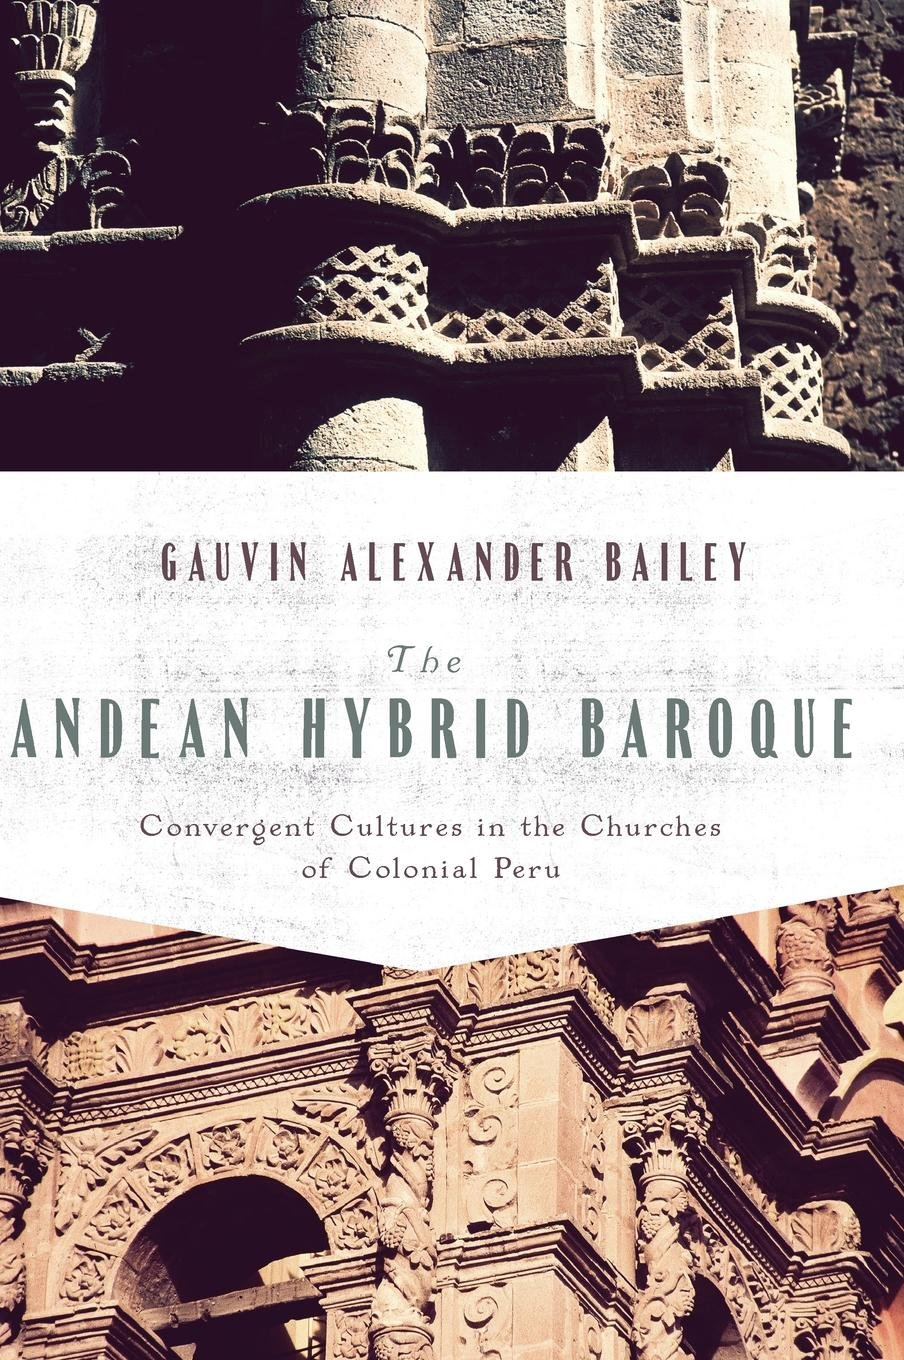 The Andean Hybrid Baroque: Convergent Cultures in the Churches of Colonial Peru (History, Languages, and Cultures of the Spanish and Portuguese Worlds) by University of Notre Dame Press